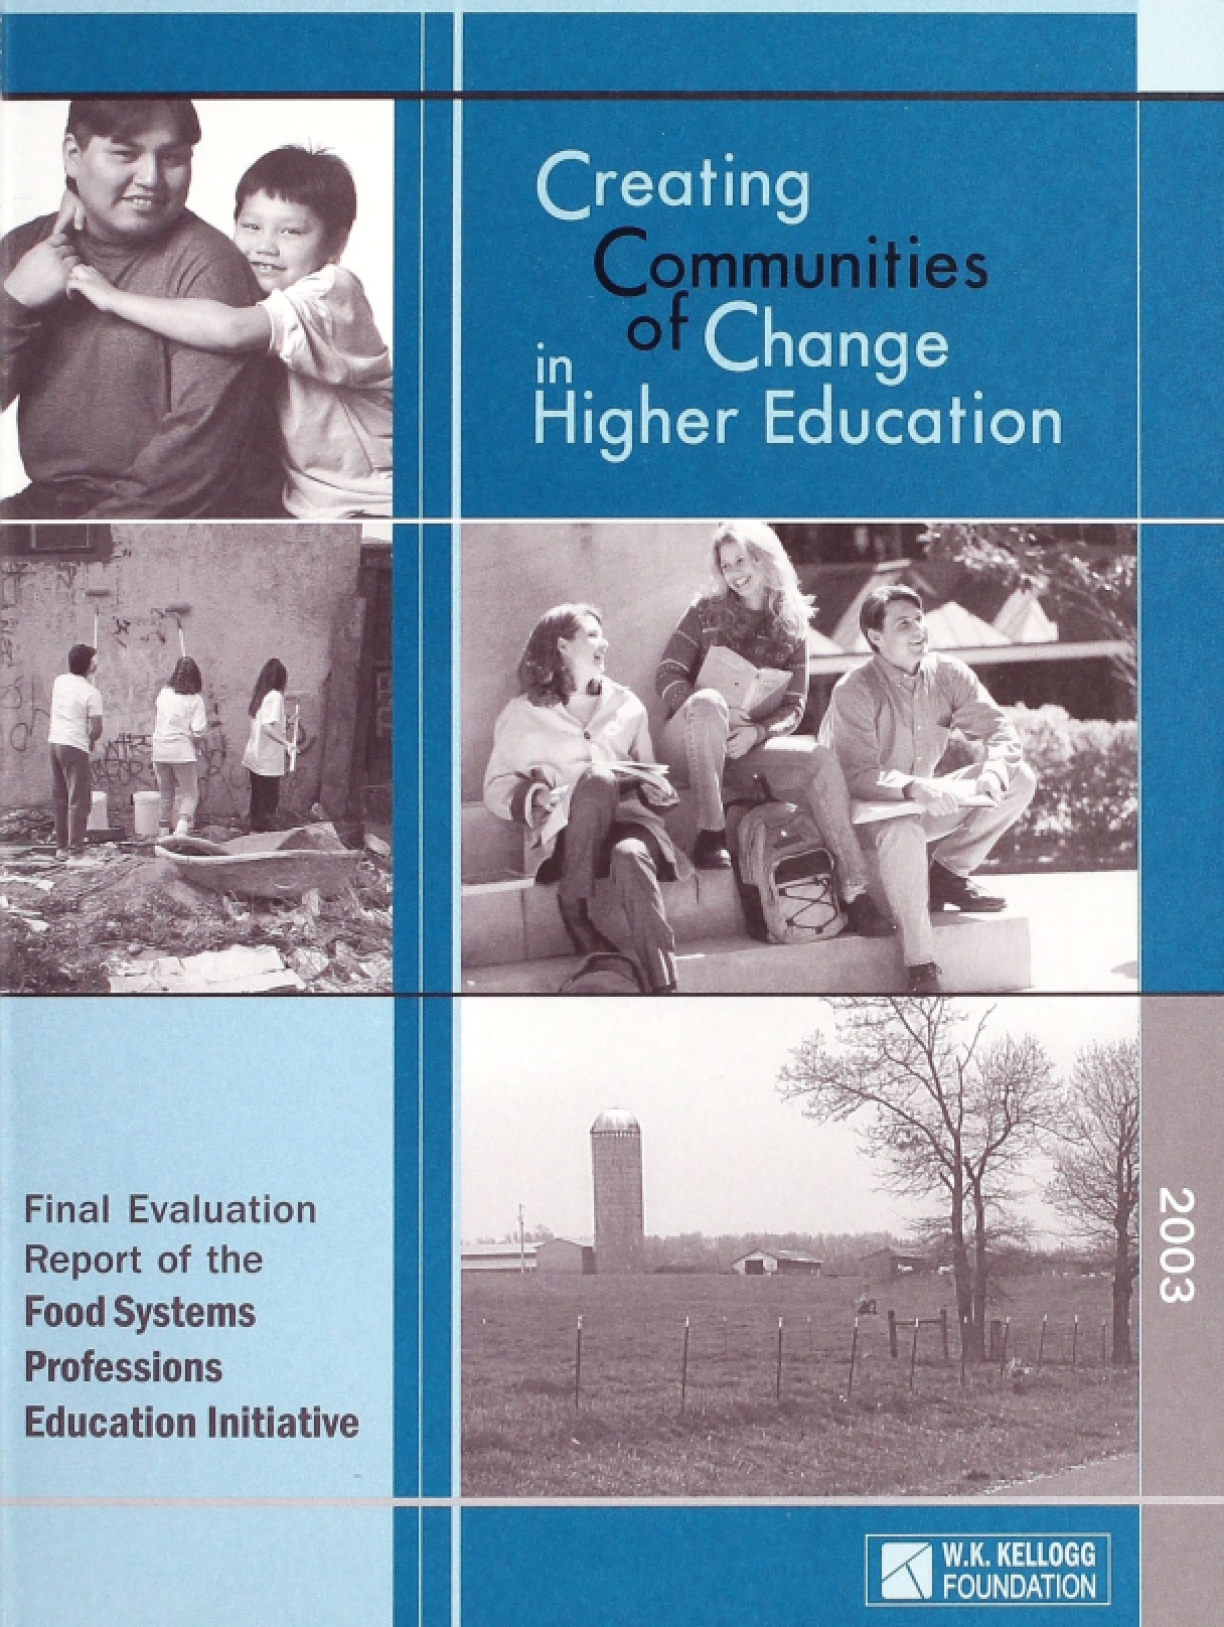 Creating Communities of Change in Higher Education